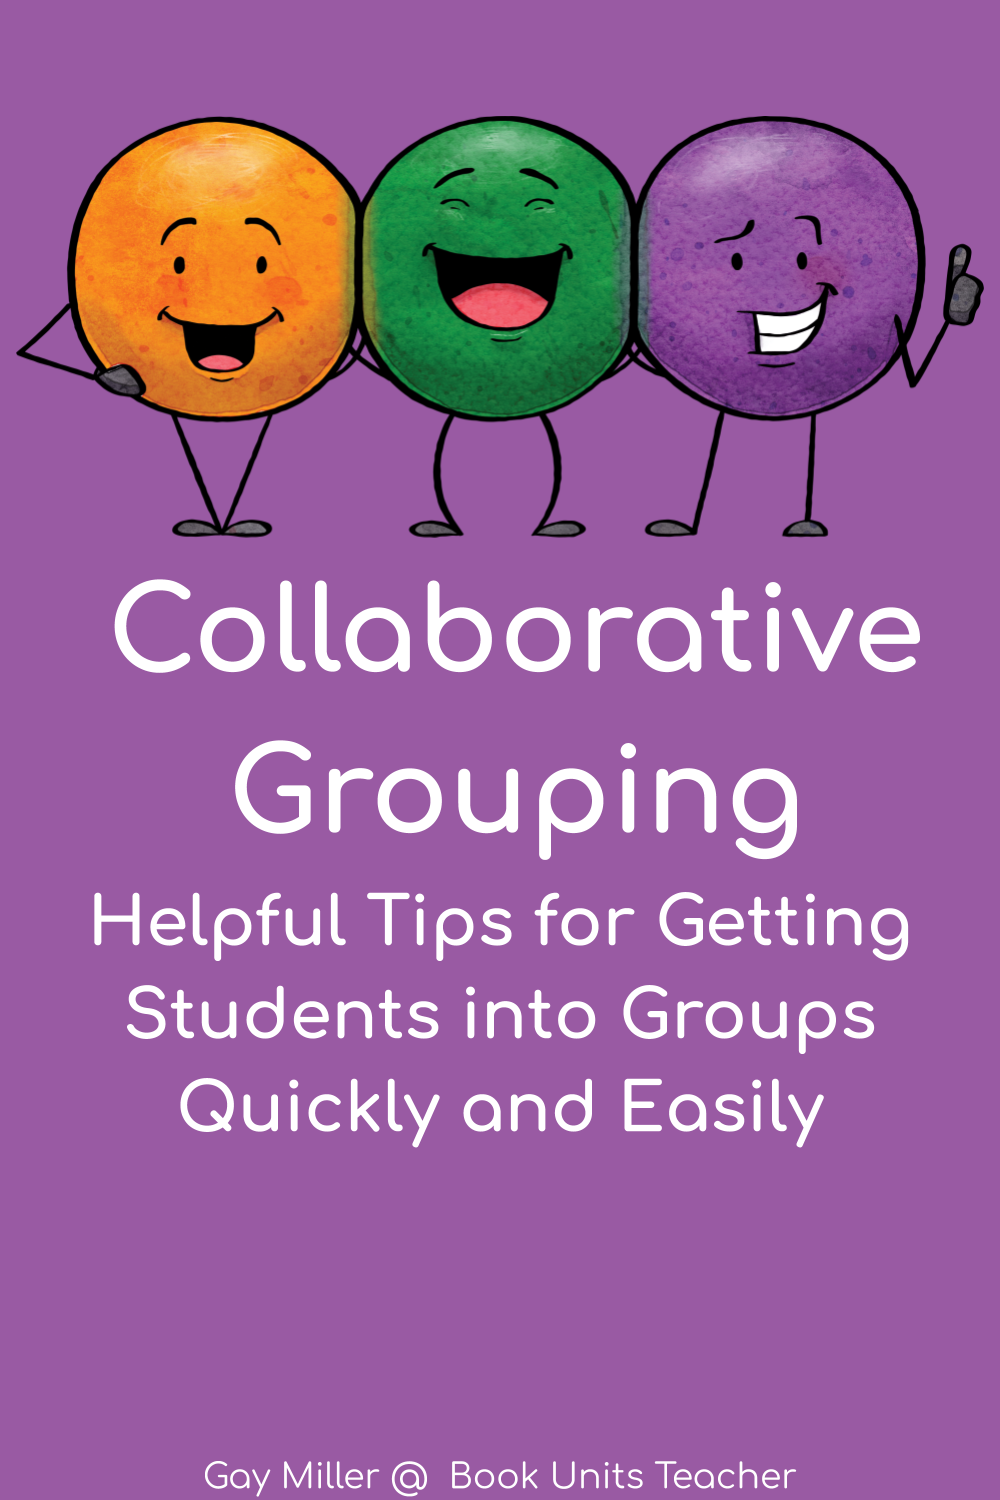 Learn a quick easy way to place students into collaborative groups.